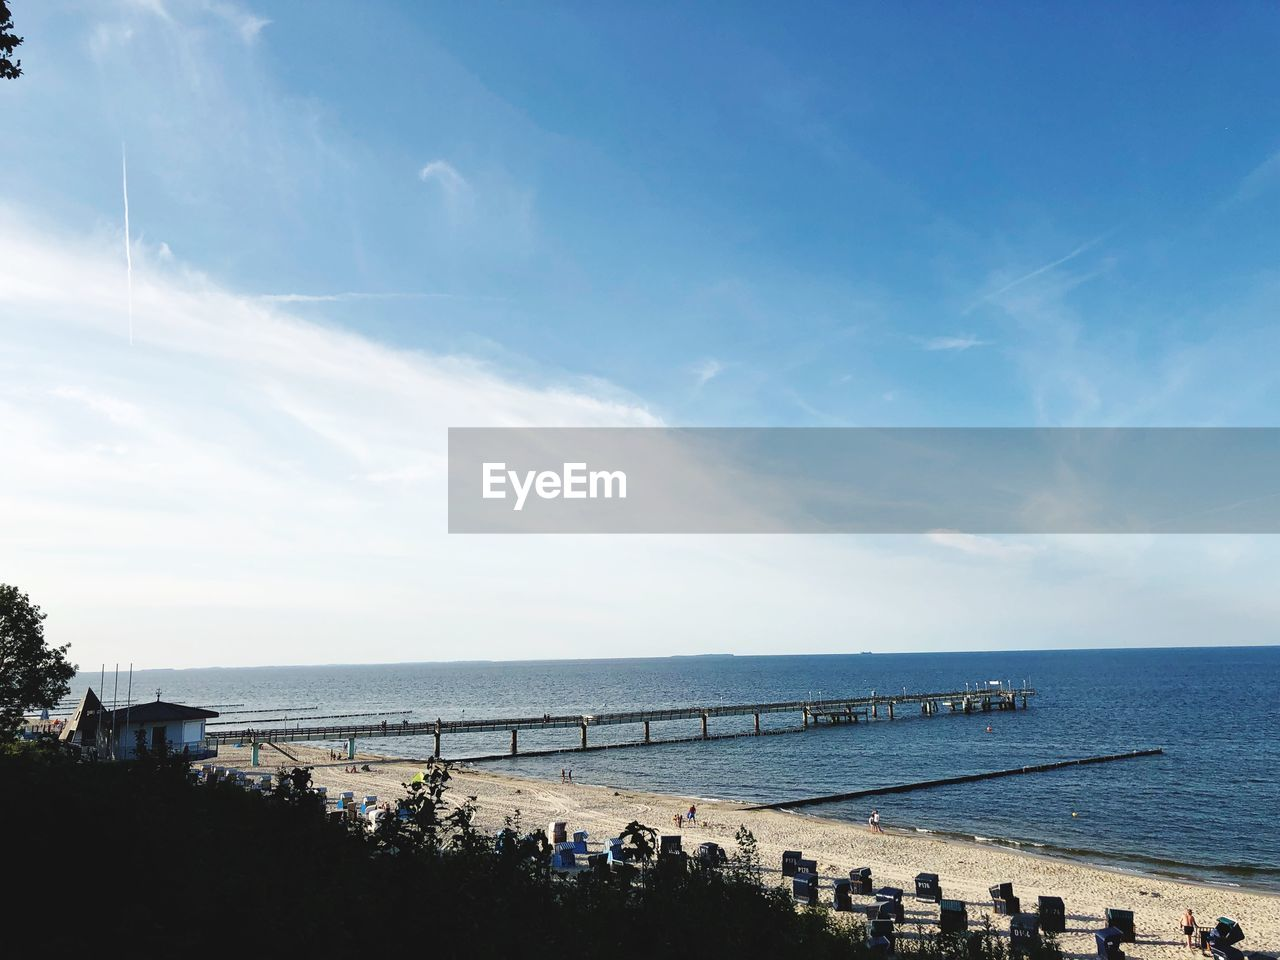 water, sky, sea, horizon, horizon over water, cloud - sky, beauty in nature, beach, group of people, scenics - nature, nature, day, land, blue, real people, large group of people, tranquility, lifestyles, tranquil scene, outdoors